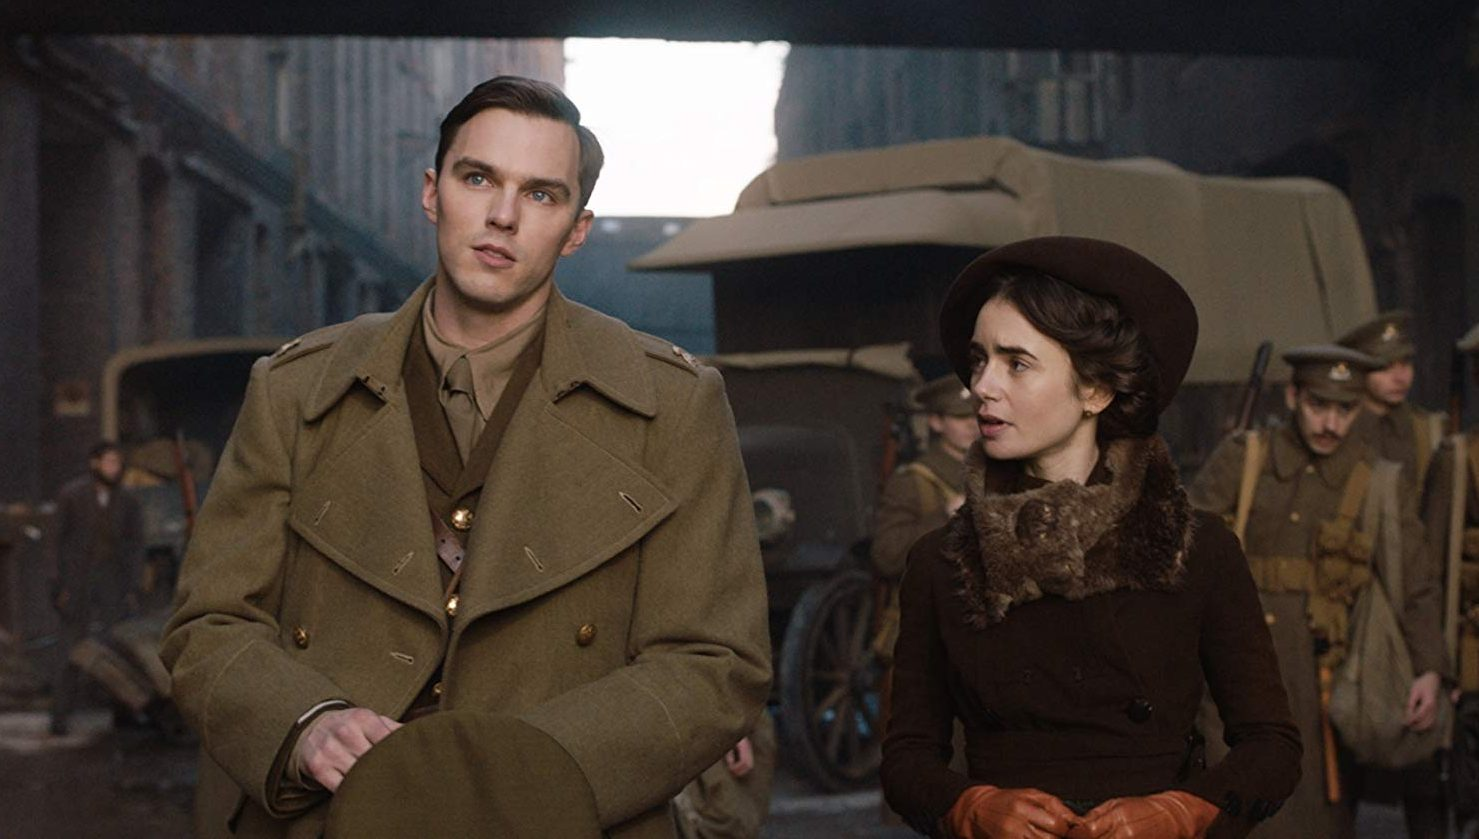 J.R.R. Tolkien (Nicholas Hoult) and his love Edith Bratt (Lily Collins) in Tolkien (2019)